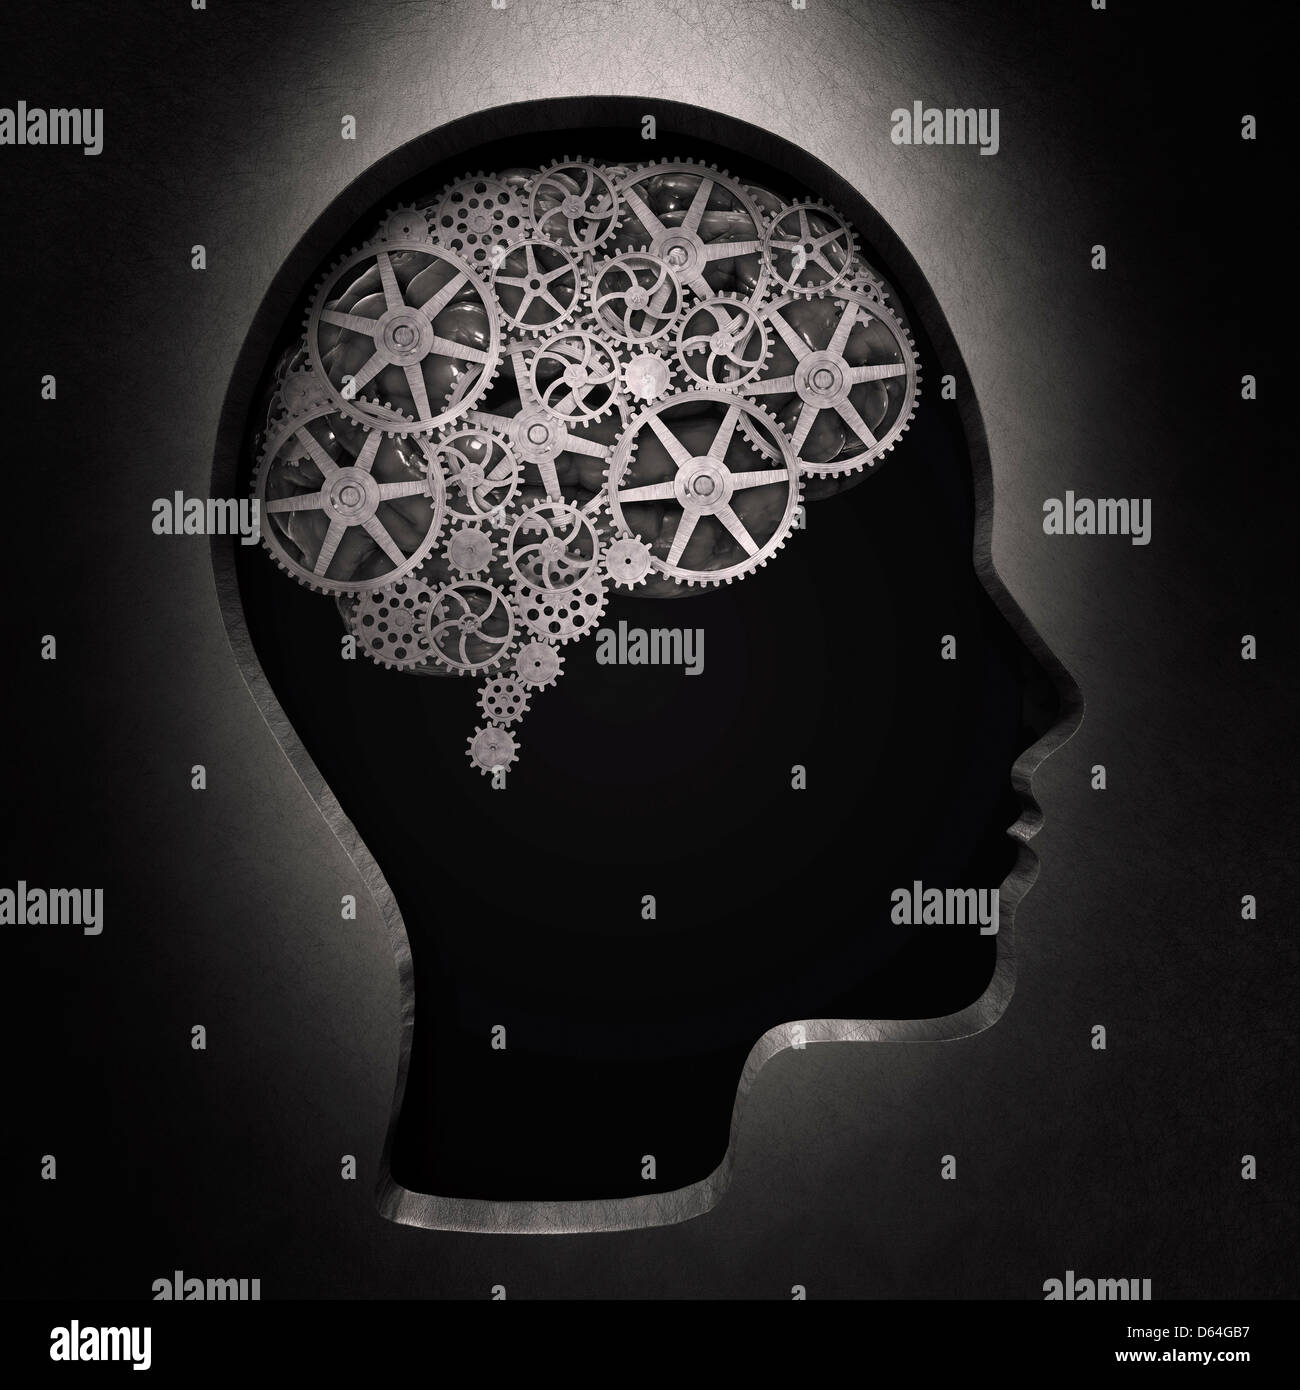 Thought processes, conceptual artwork - Stock Image